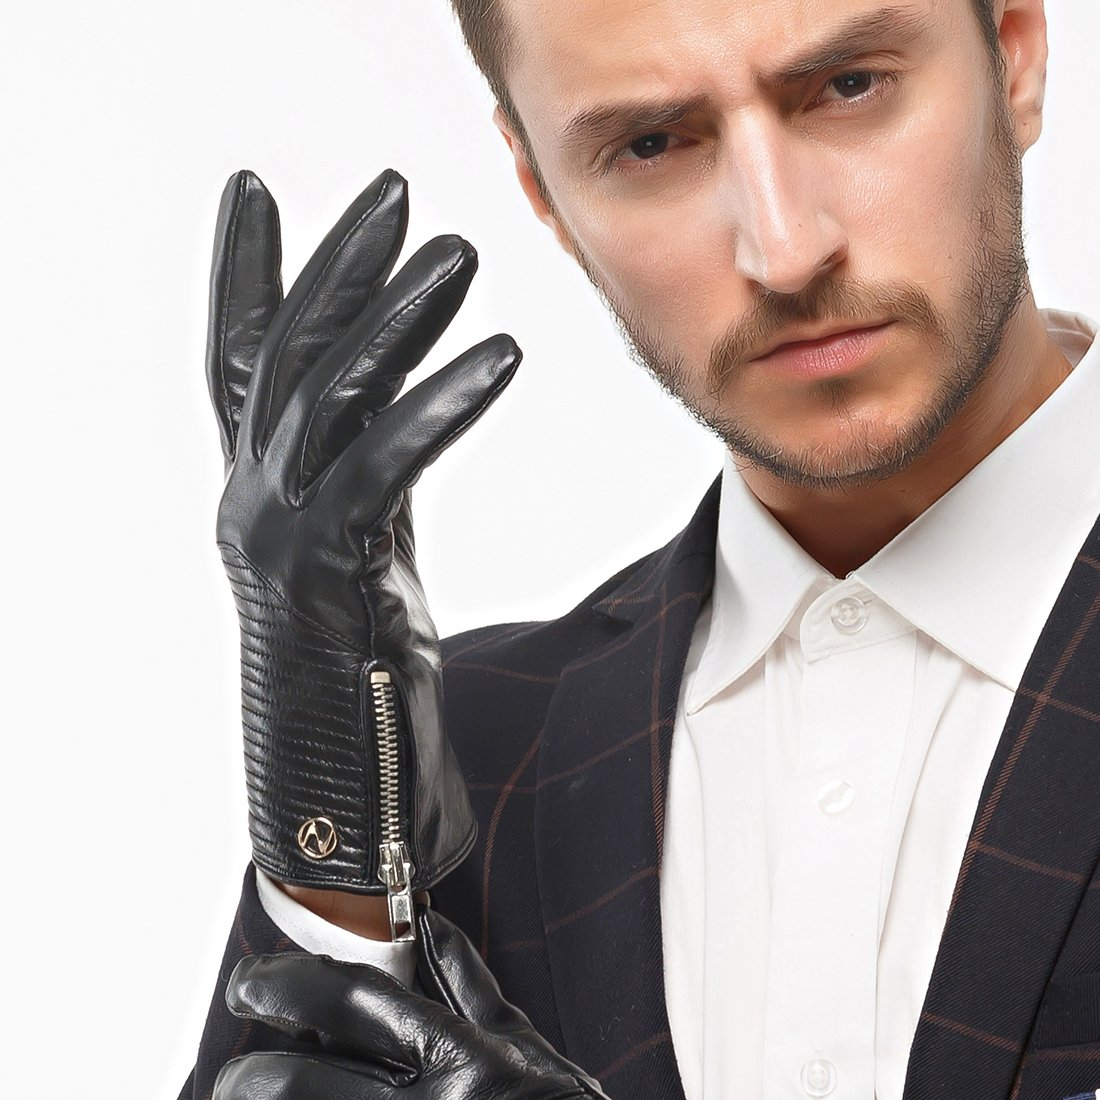 Nappaglo Men's Genuine Nappa Leather Gloves Touchscreen Winter Warm Driving Cycling Mittens with Metal Zipper (M (Palm Girth:8''-8.5''), Black (Touchscreen)) by Nappaglo (Image #2)